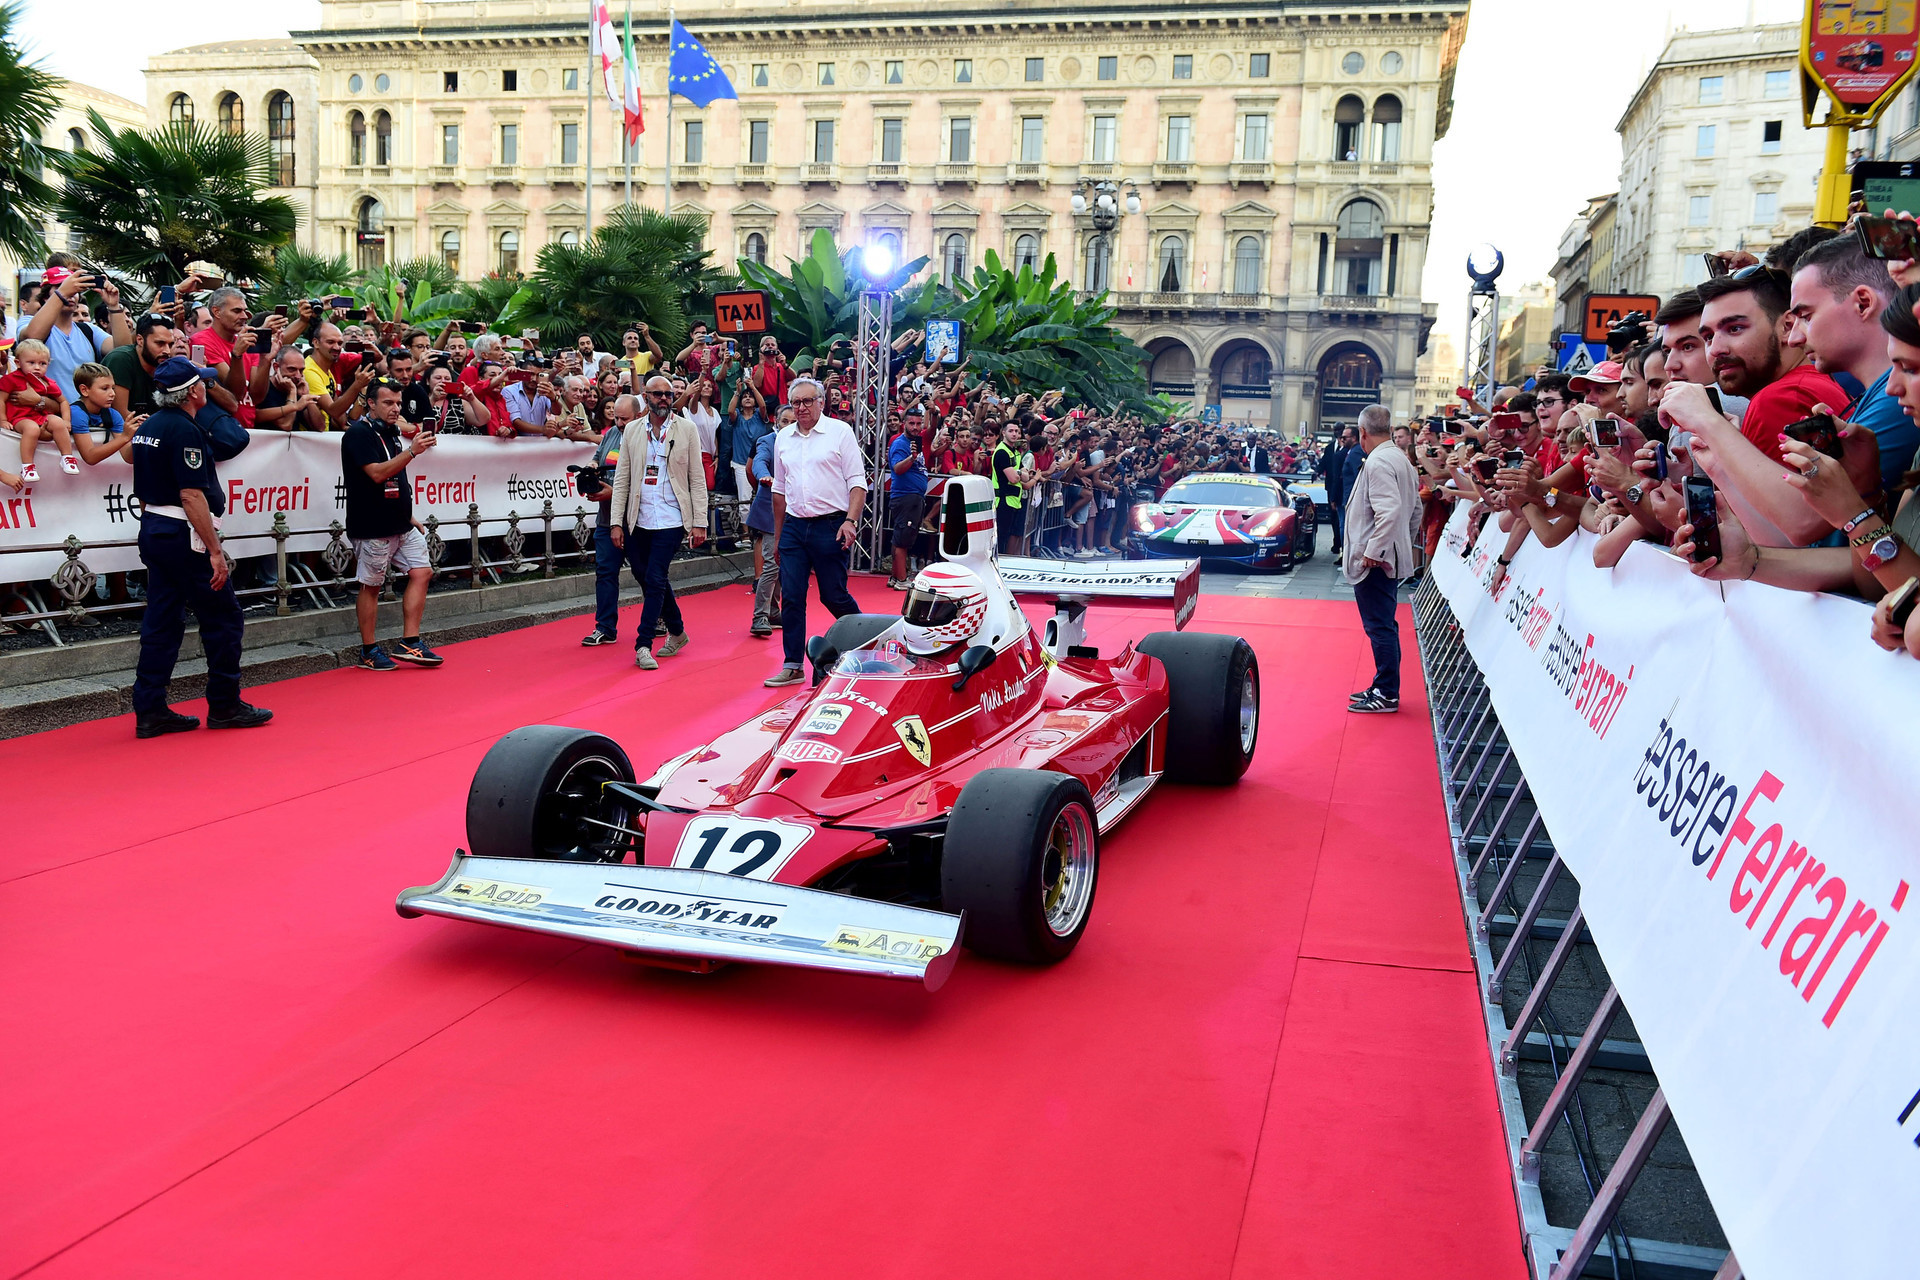 2019 Ferrari 90 Years celebration at Milan | 4 Sept 2019 website 8.jpg